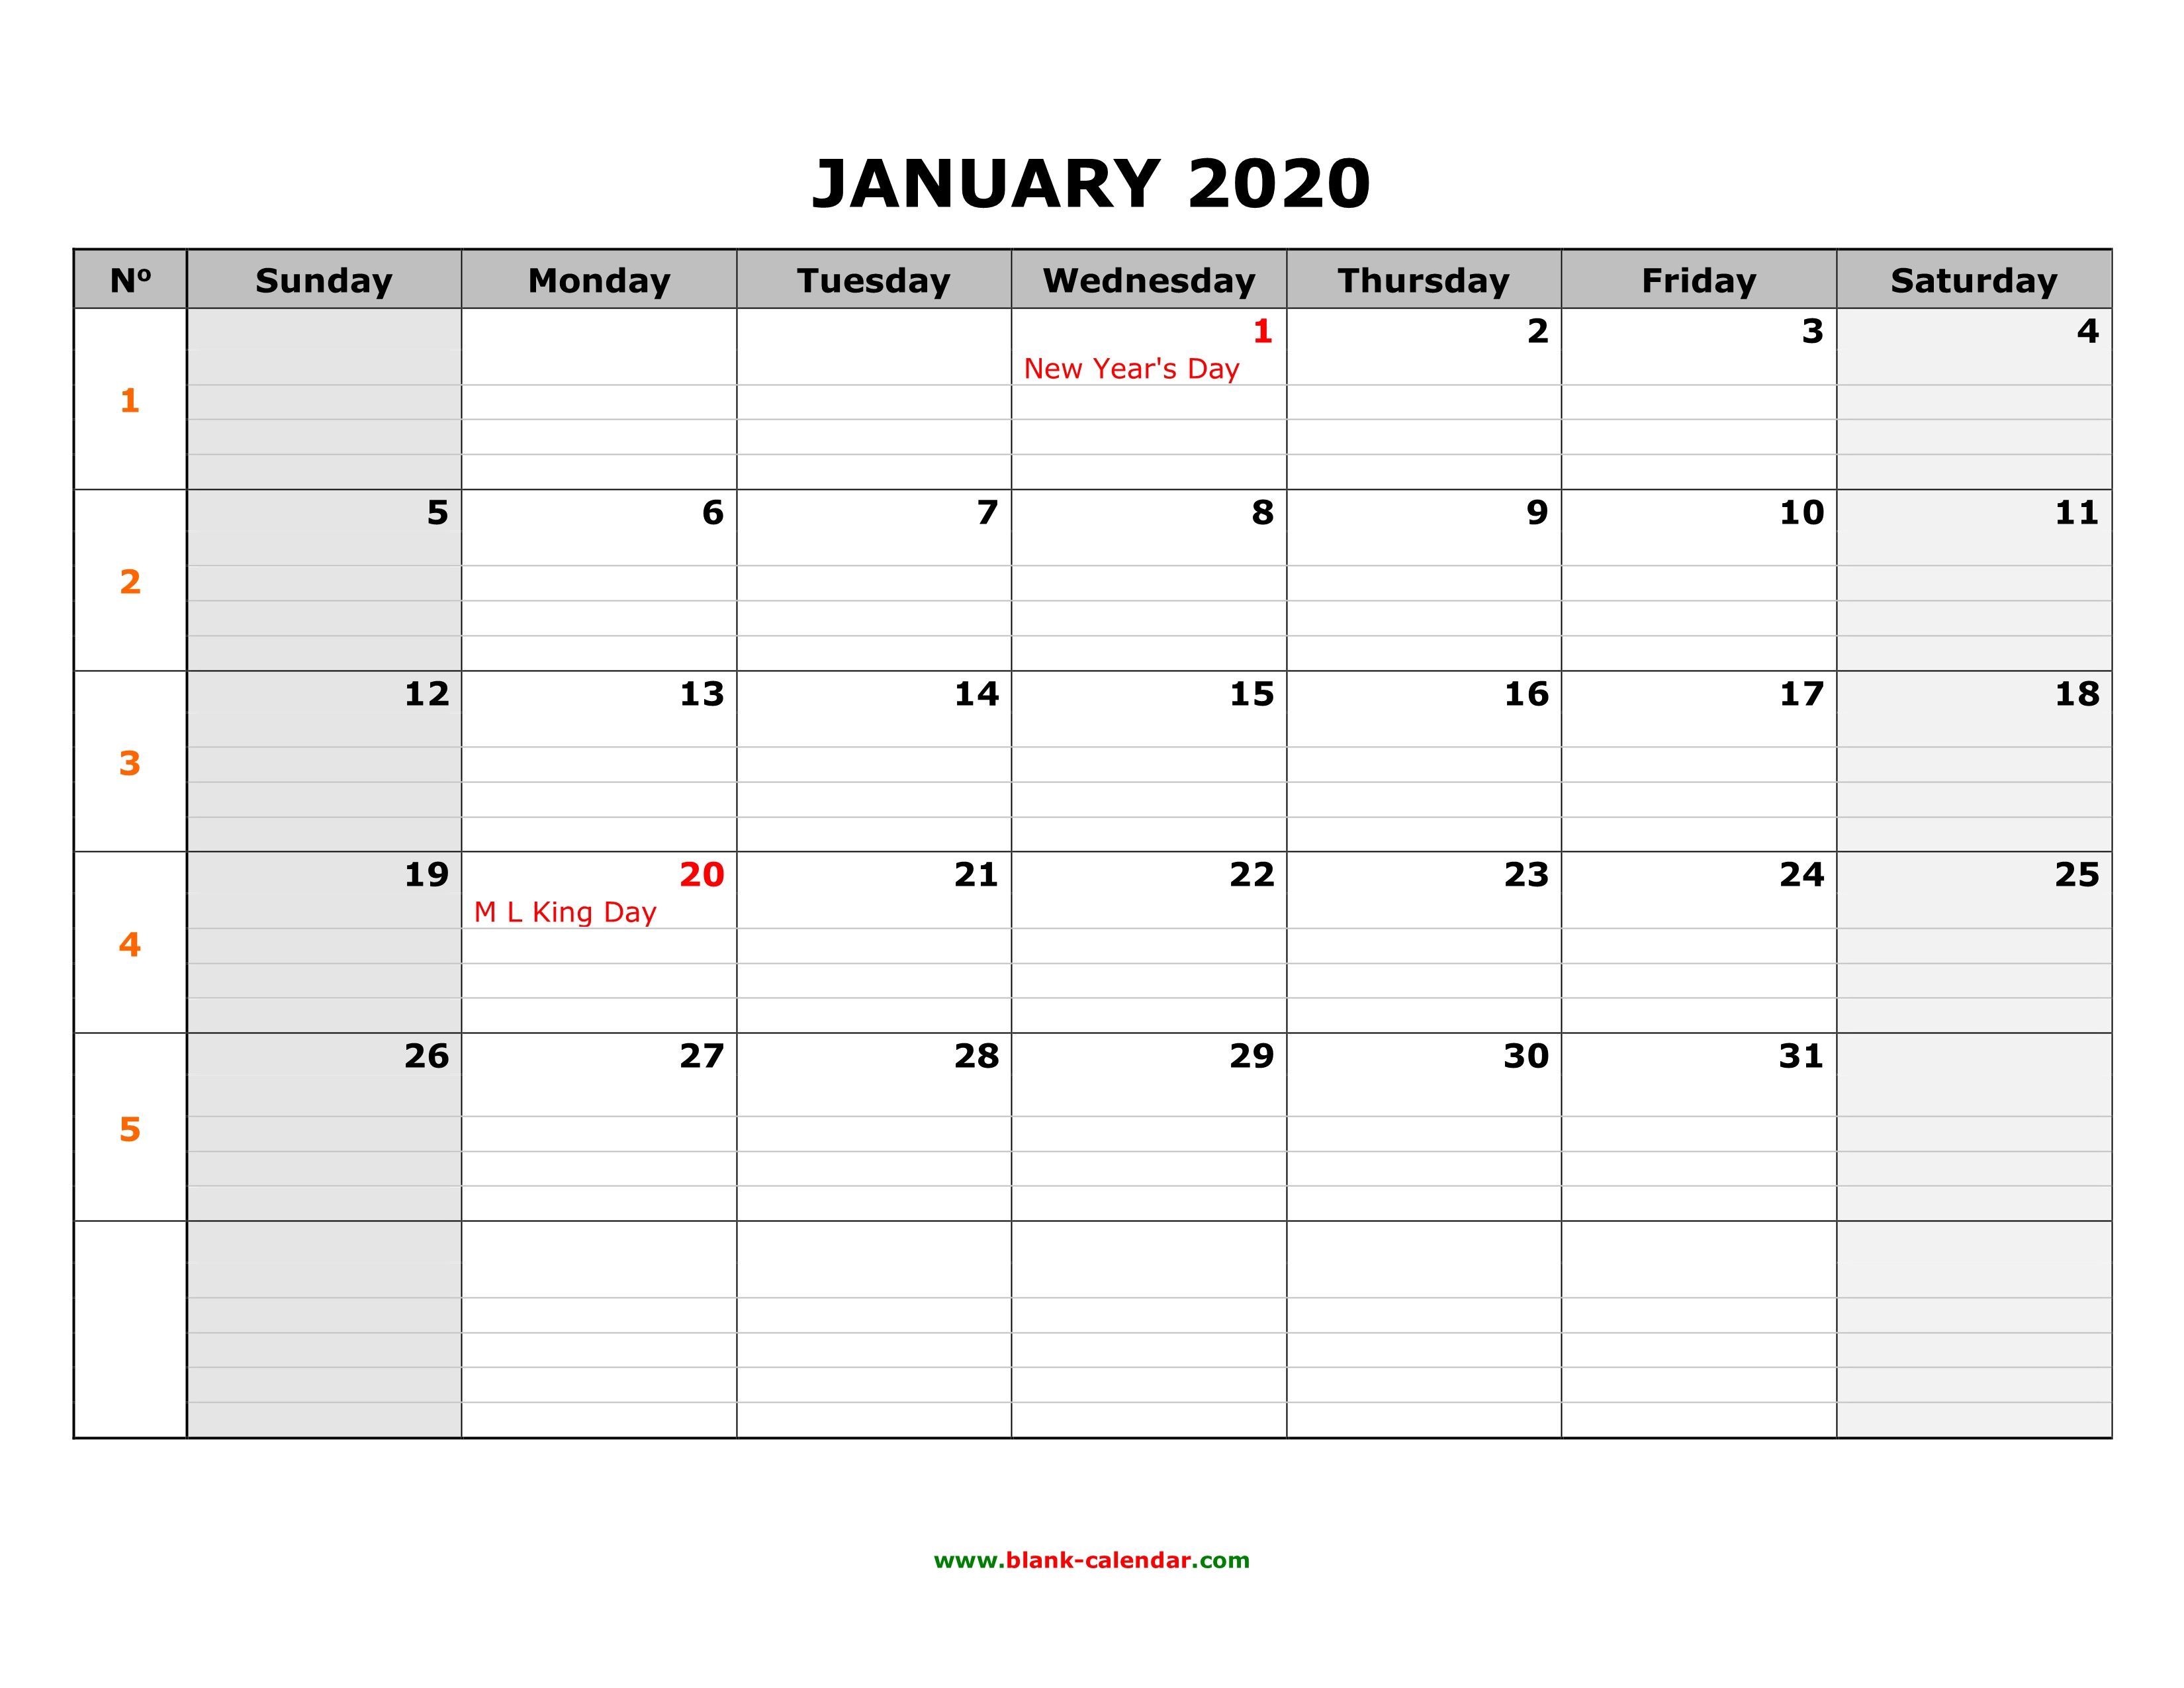 Large January 2020 Calendar Free Download Printable January 2020 Calendar, large box grid